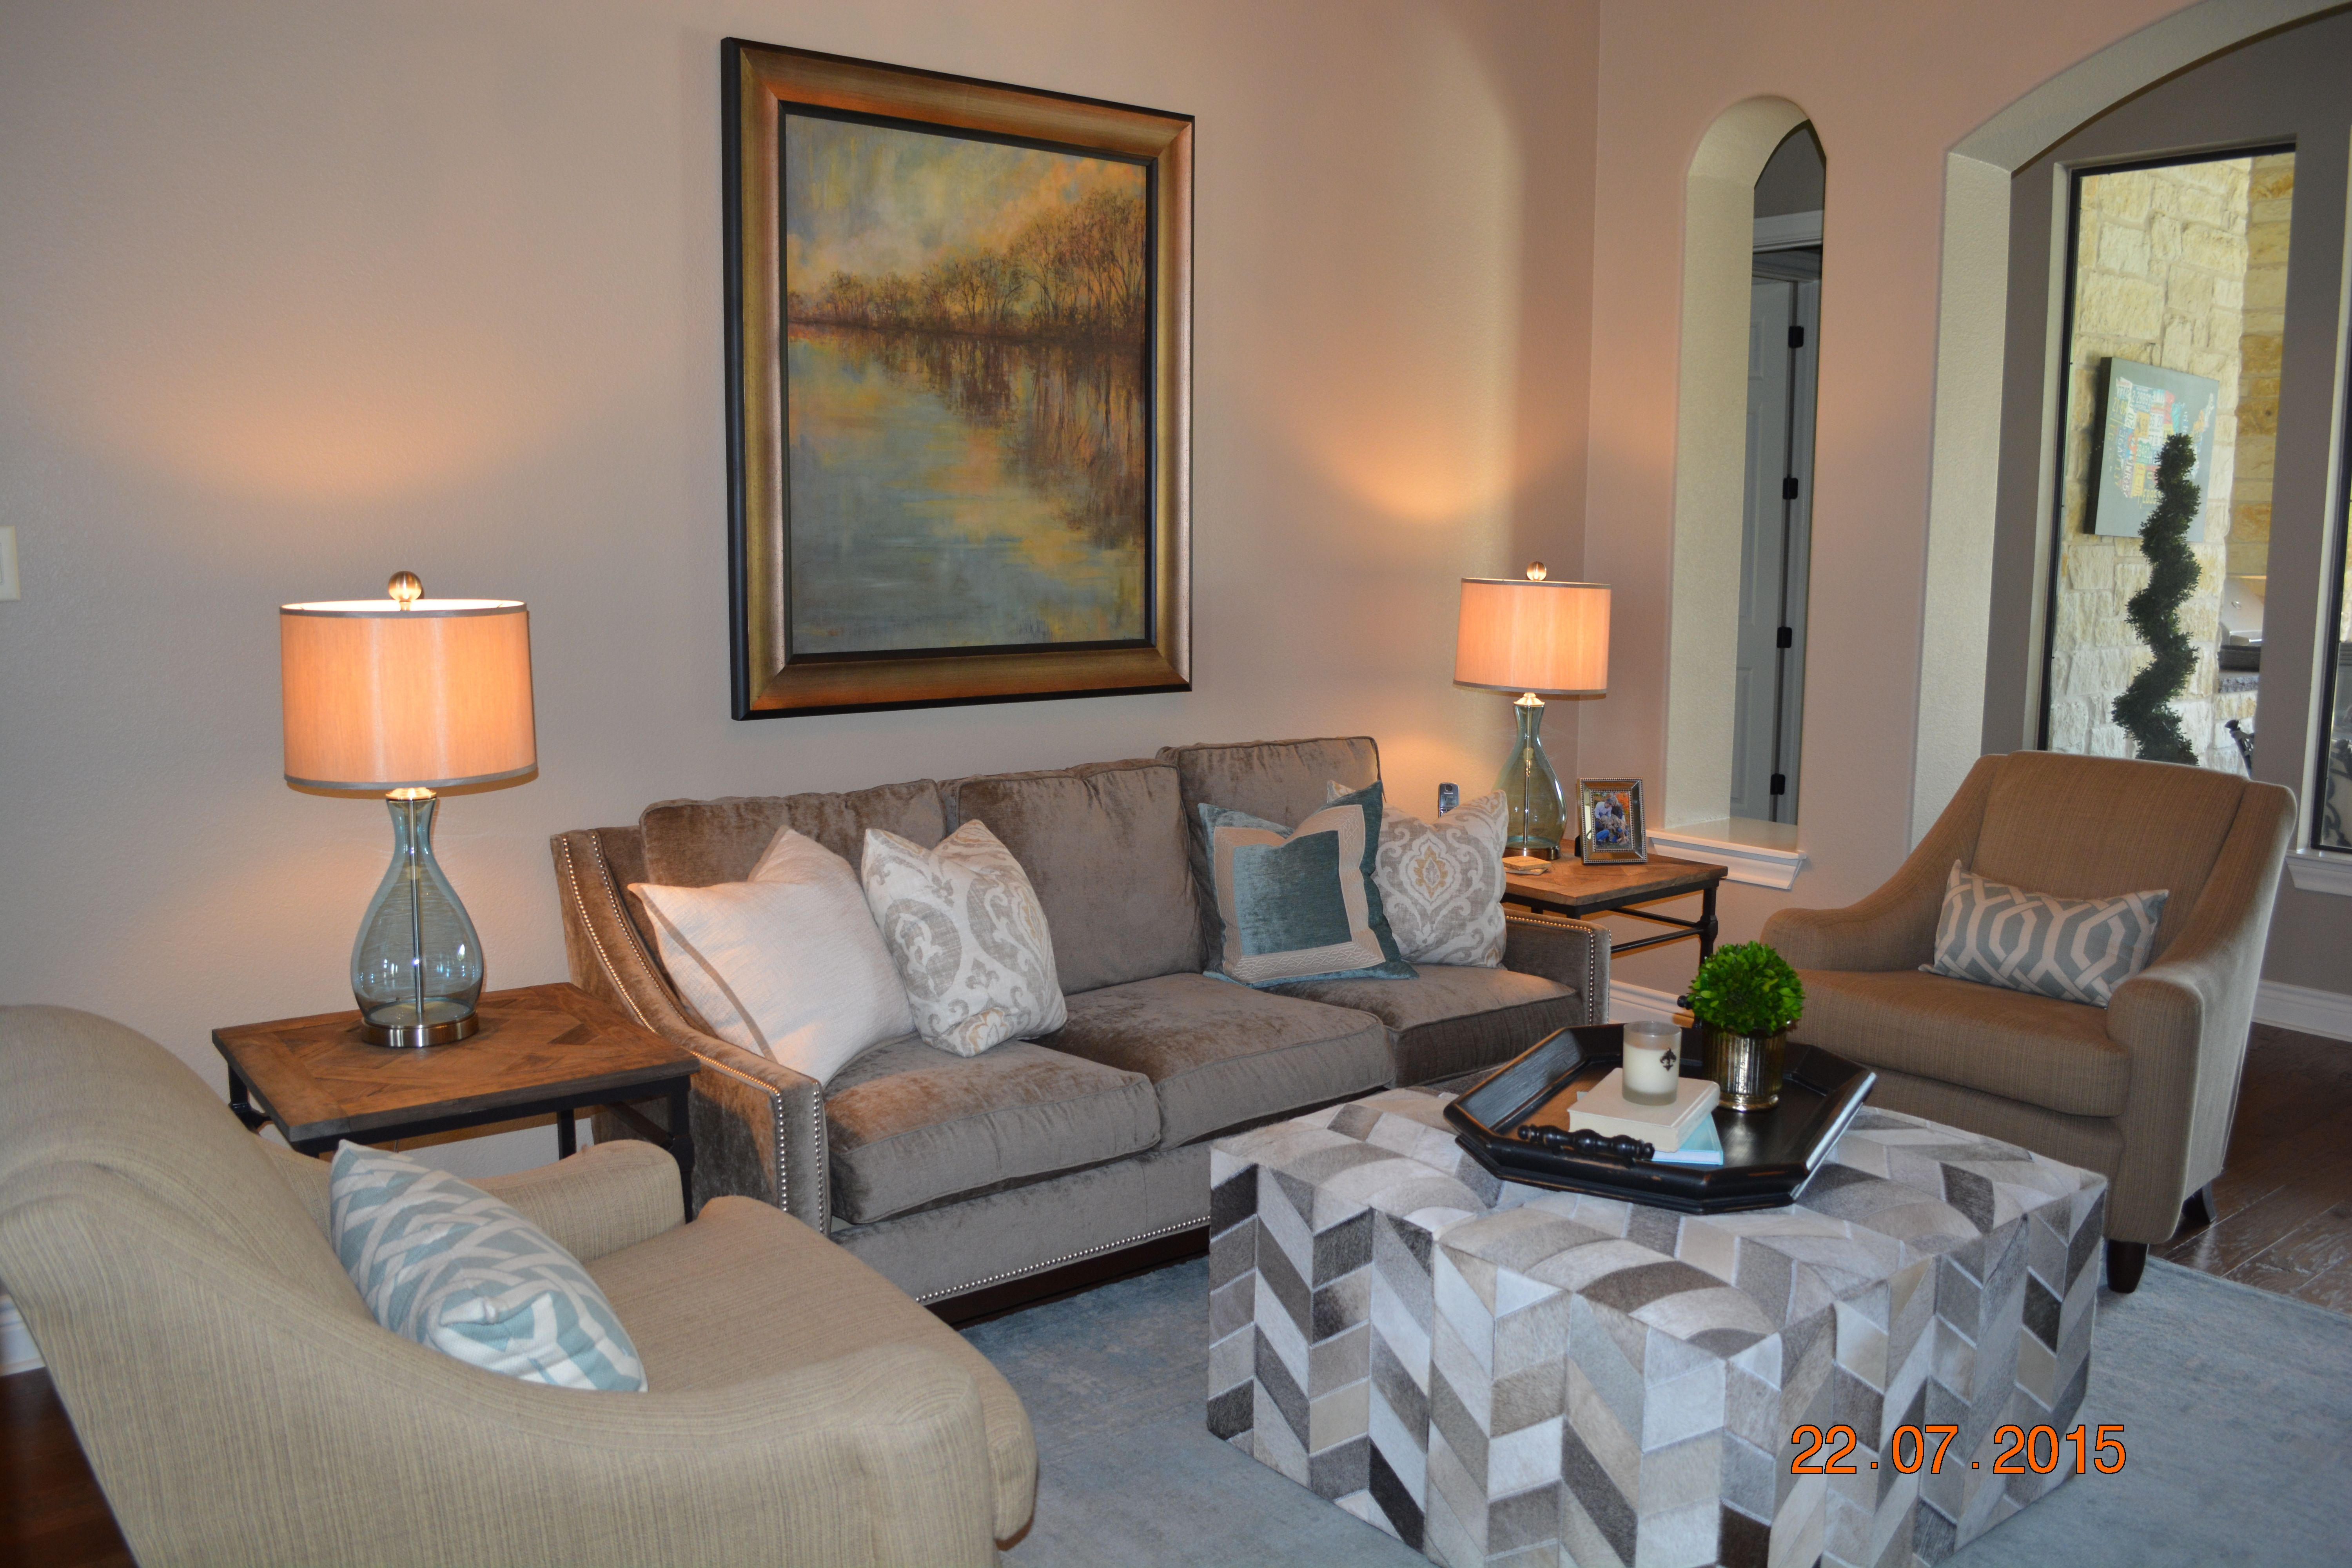 Four cowhide ottomans from Surya make the perfect coffee table for this room.  The turquoise rug, lamps and throw pillows accent the art.  This is the Giles sofa from Taylor King.